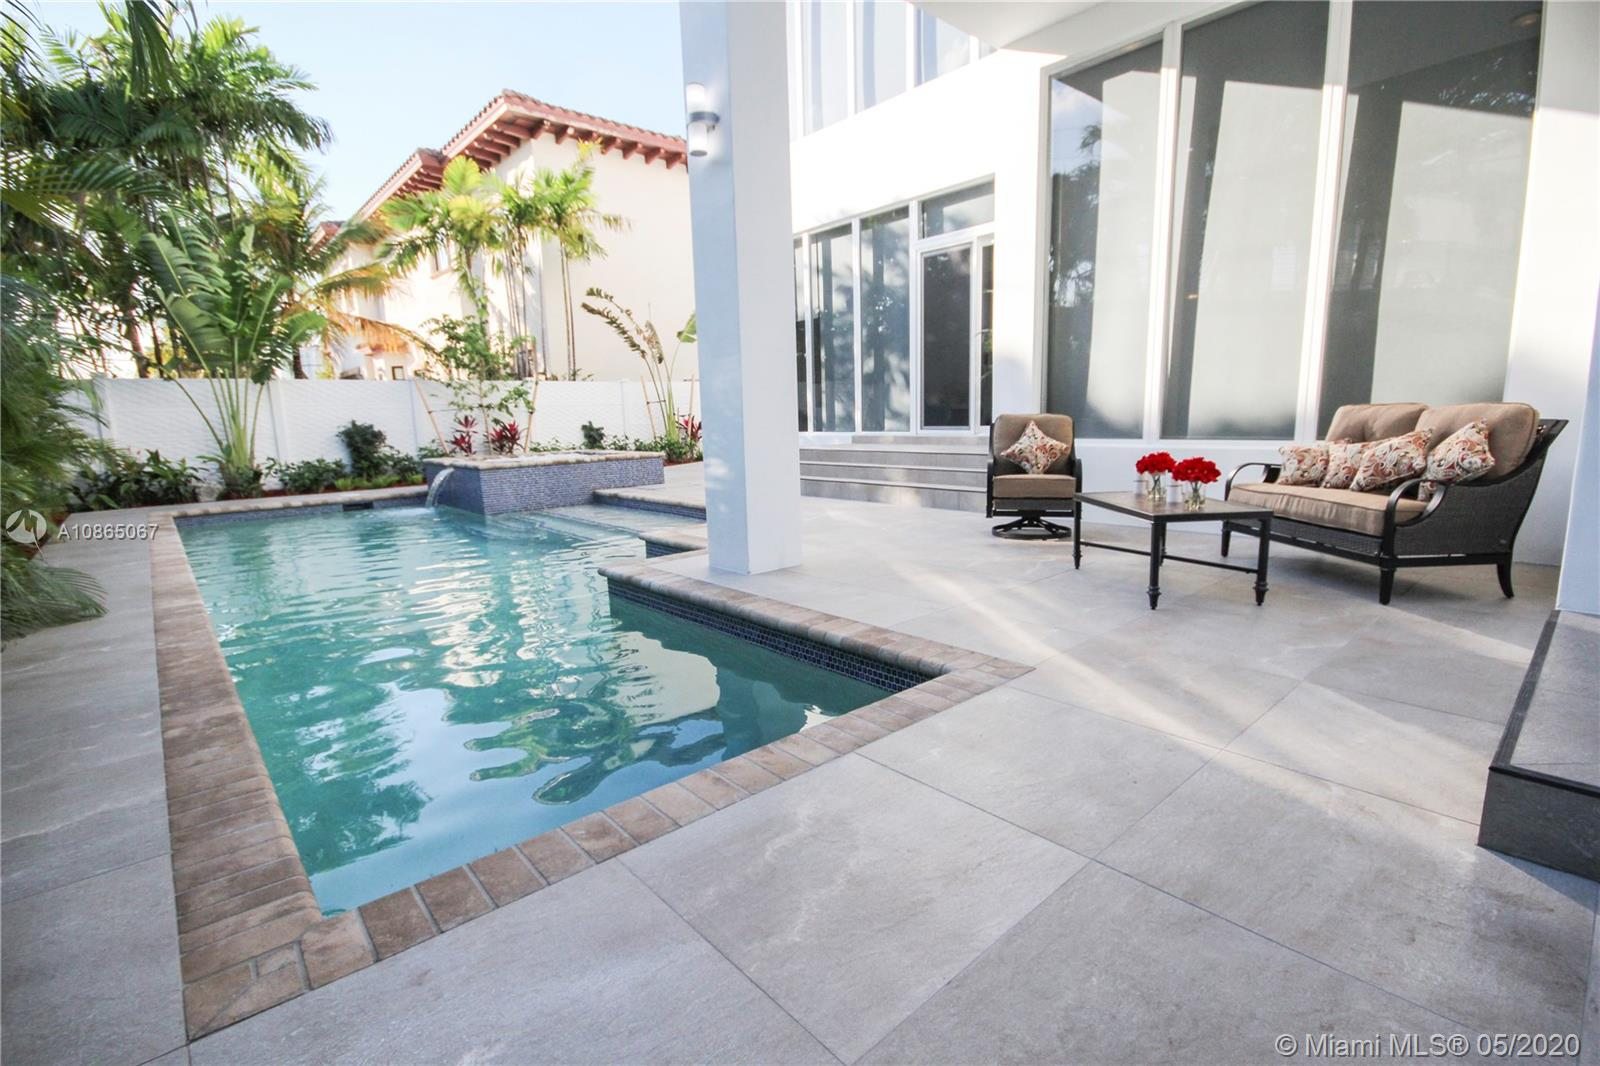 Relaxing pool area with covered patio and sun all day long.